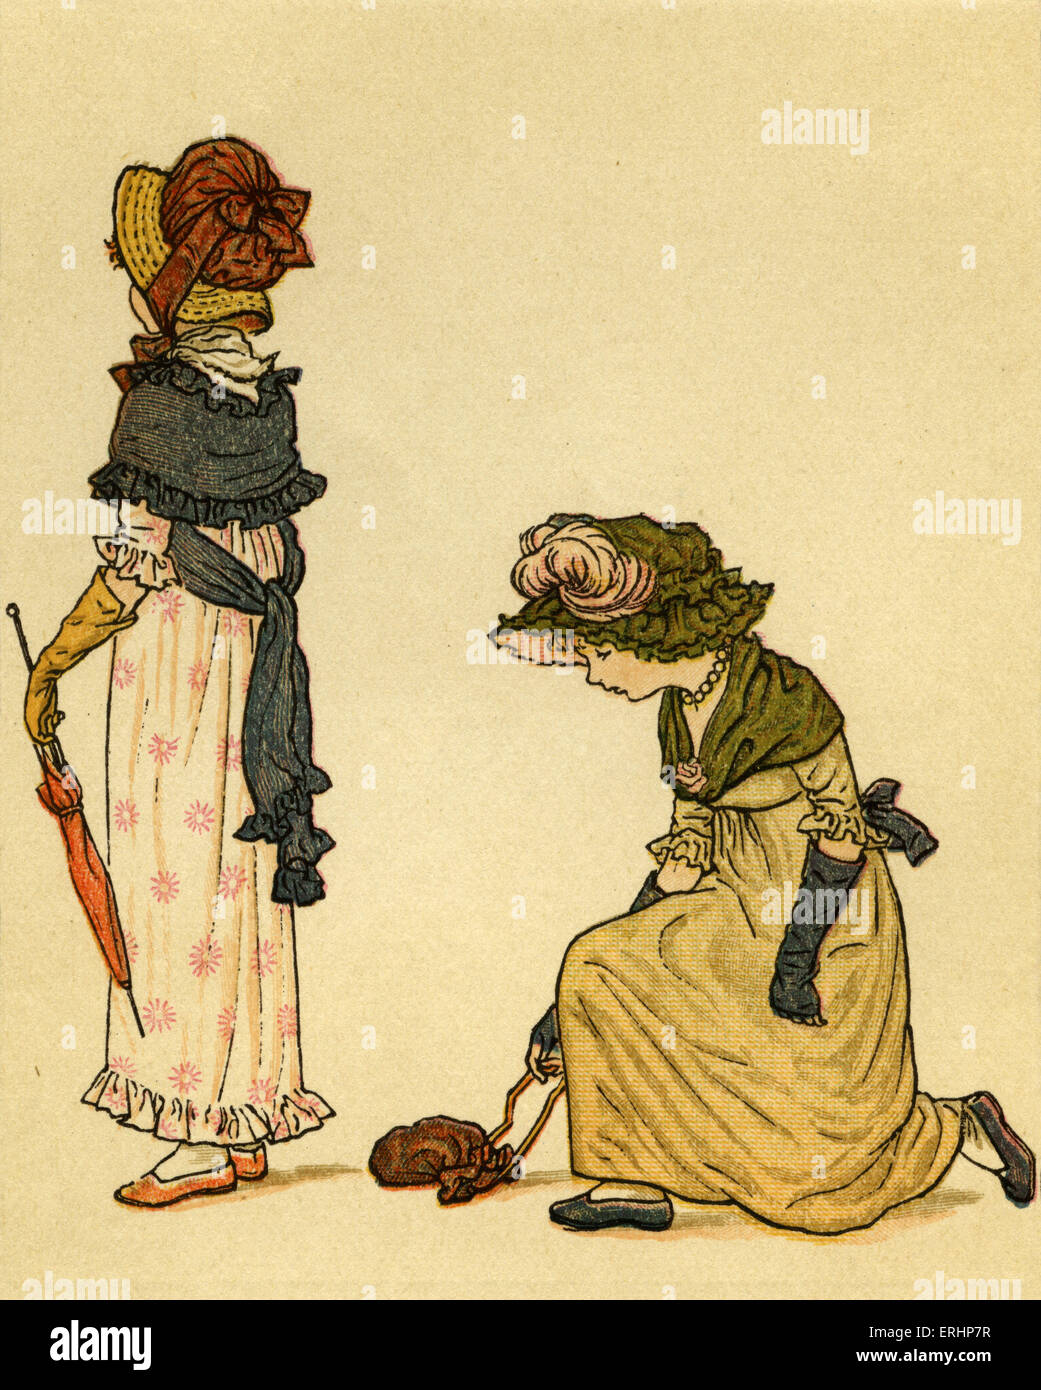 Lucy Locket, lost her pocket, illustrated by Kate Greenaway. English children 's book illustrator and authoress - Stock Image